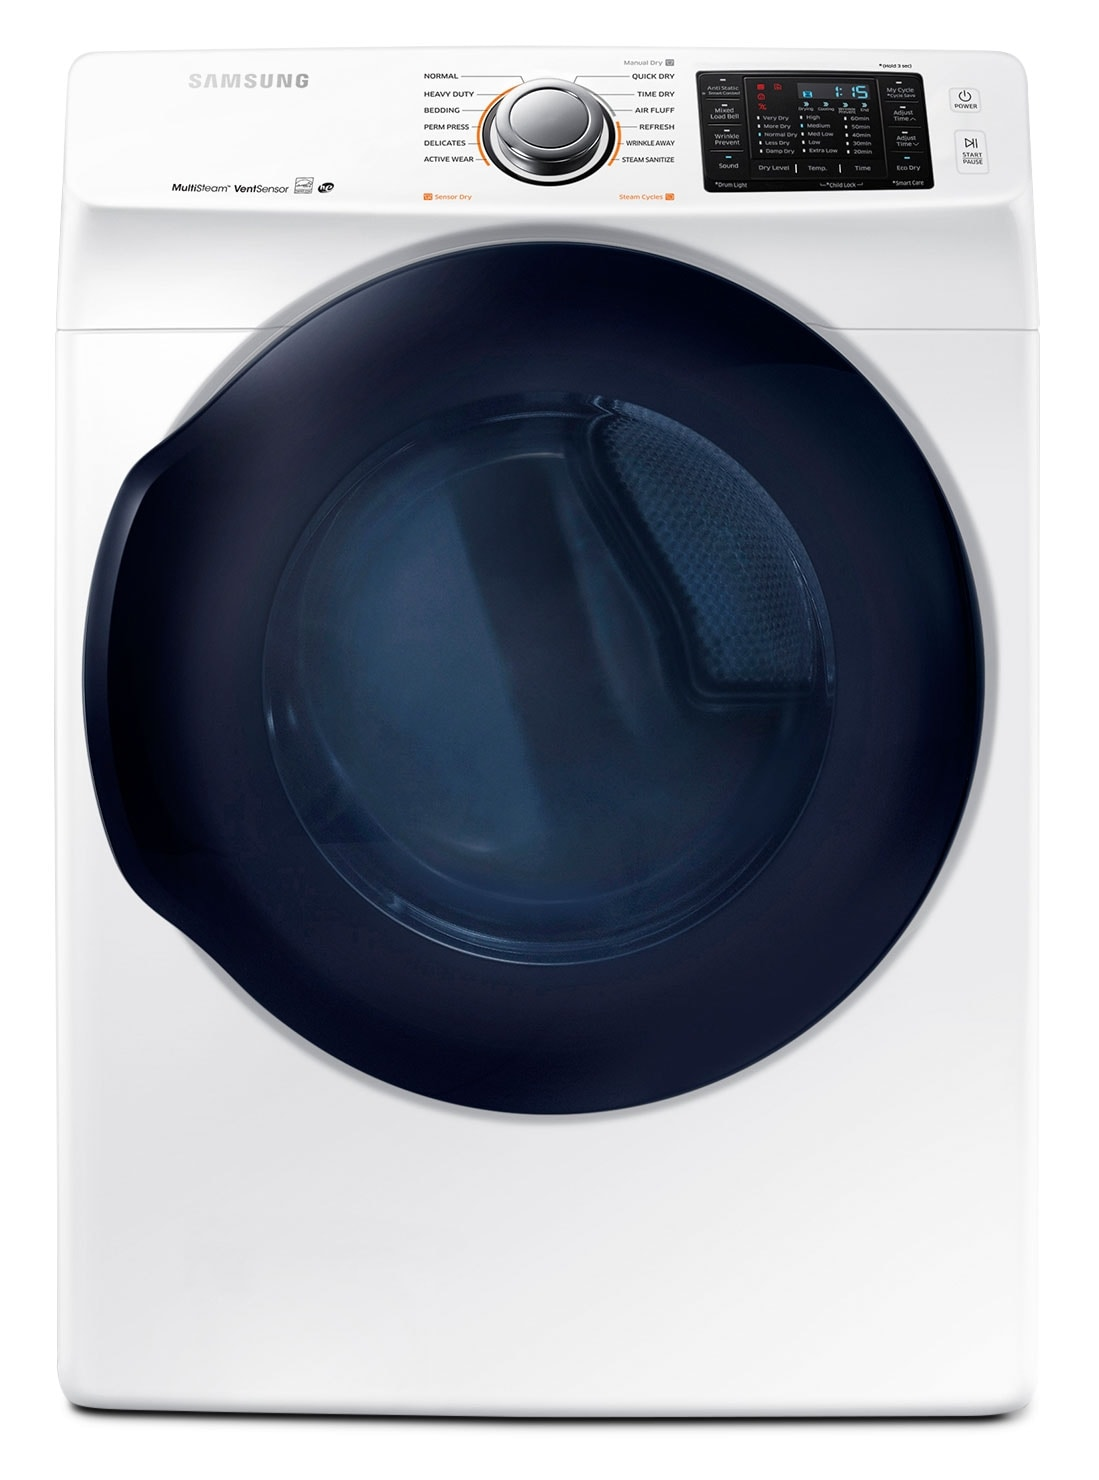 Washers and Dryers - Samsung 7.5 Cu. Ft. Electric Dryer – DV45K6200EW/AC